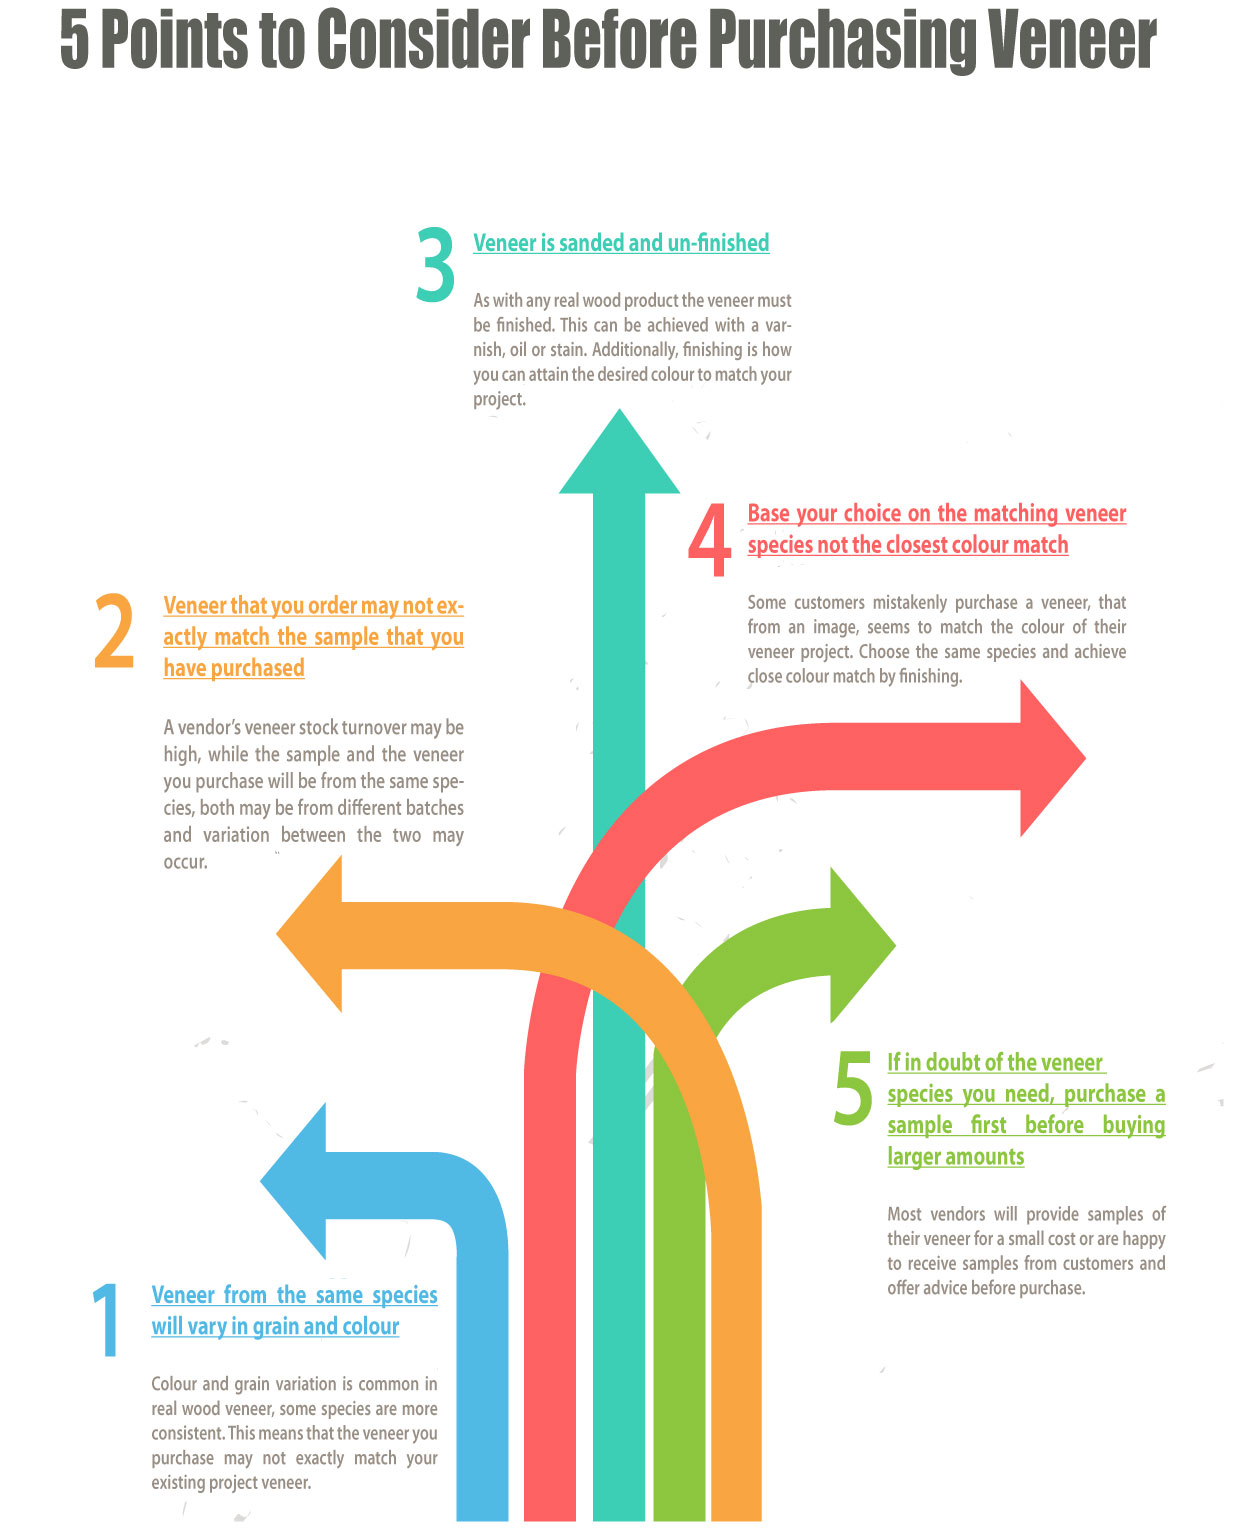 5 points to consider before purchasing veneer infographic